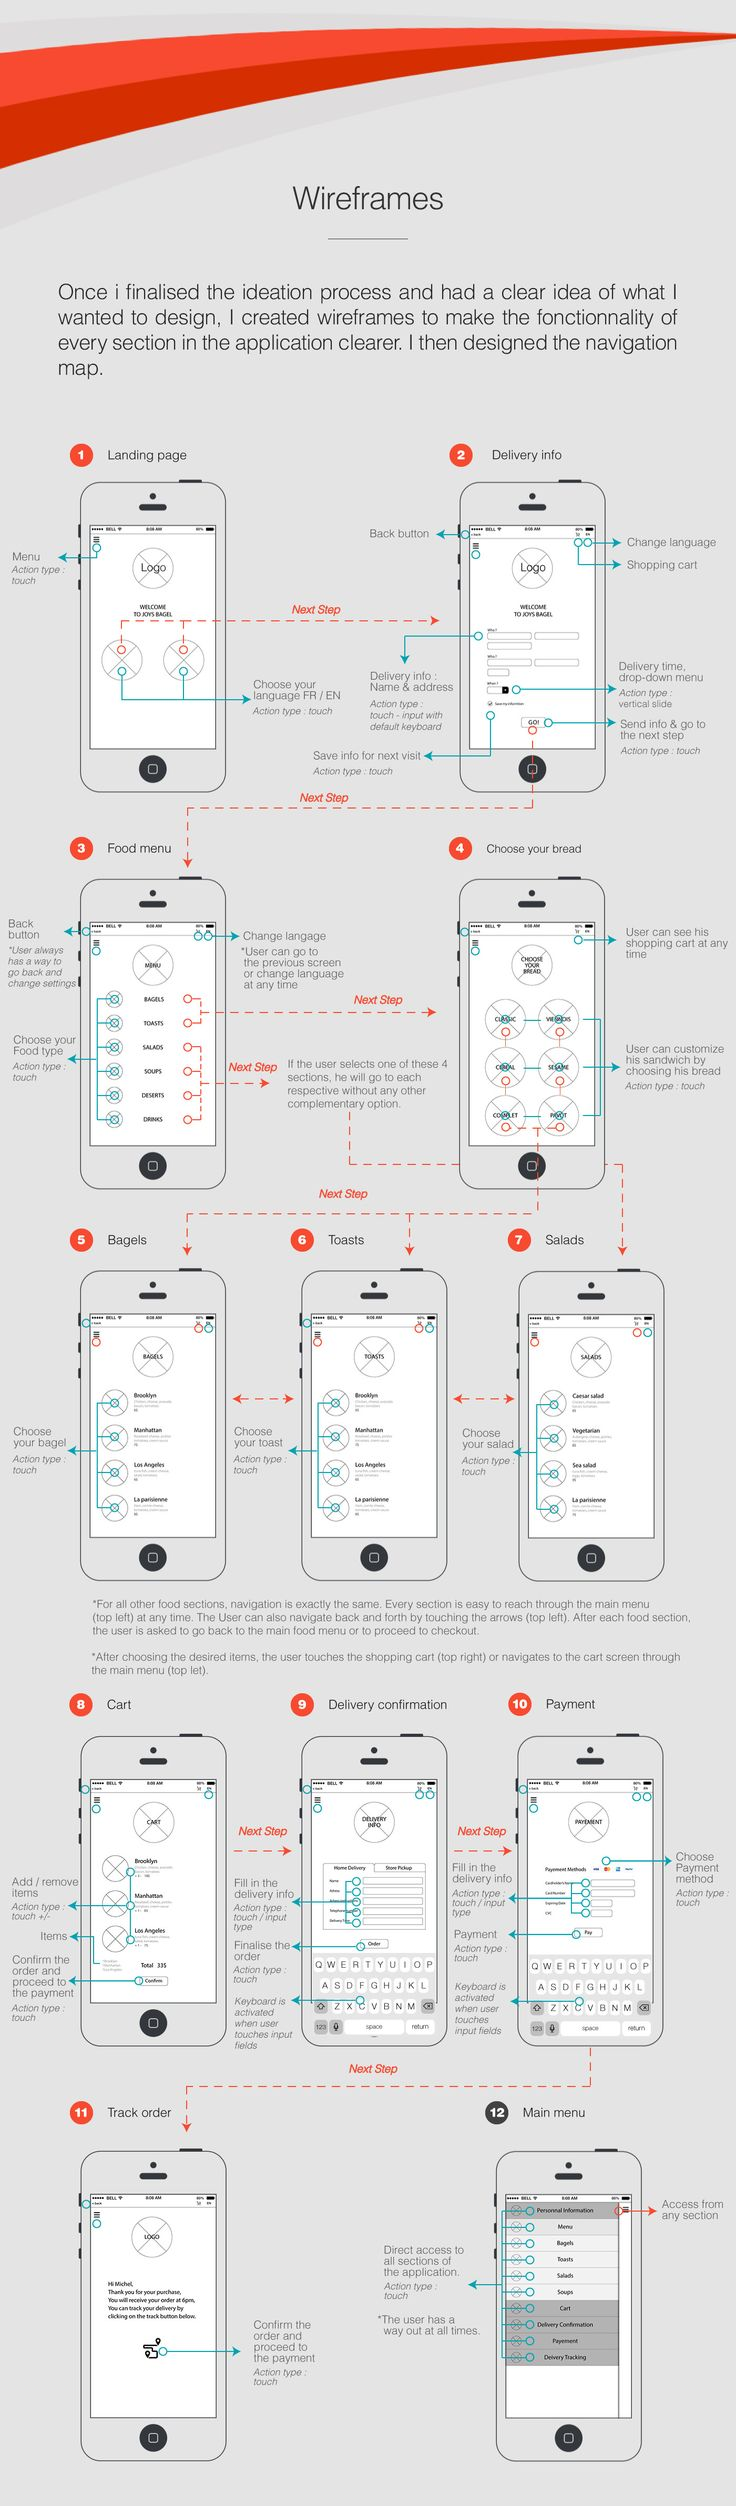 [Infographie] Exemple de réalisation de Wireframe d'application mobile #UX #UI #webdesign